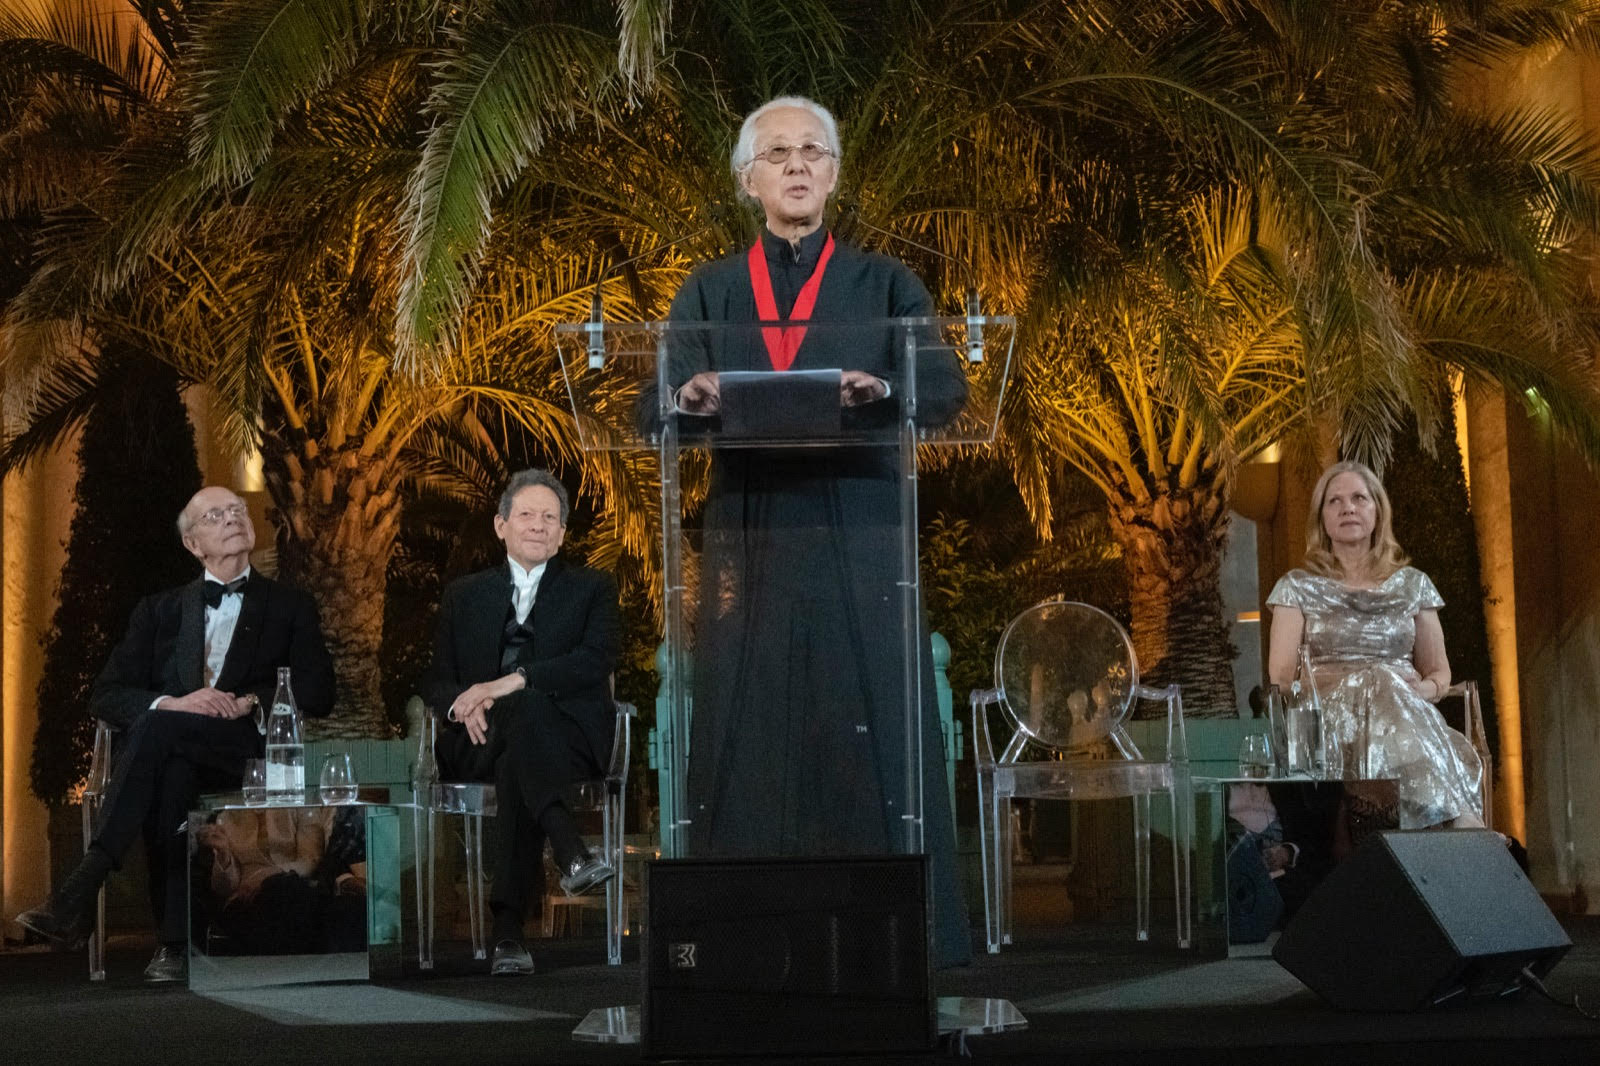 Photo of Arata Isozaki speaking at the 2019 Pritzker Prize ceremony at Versailles